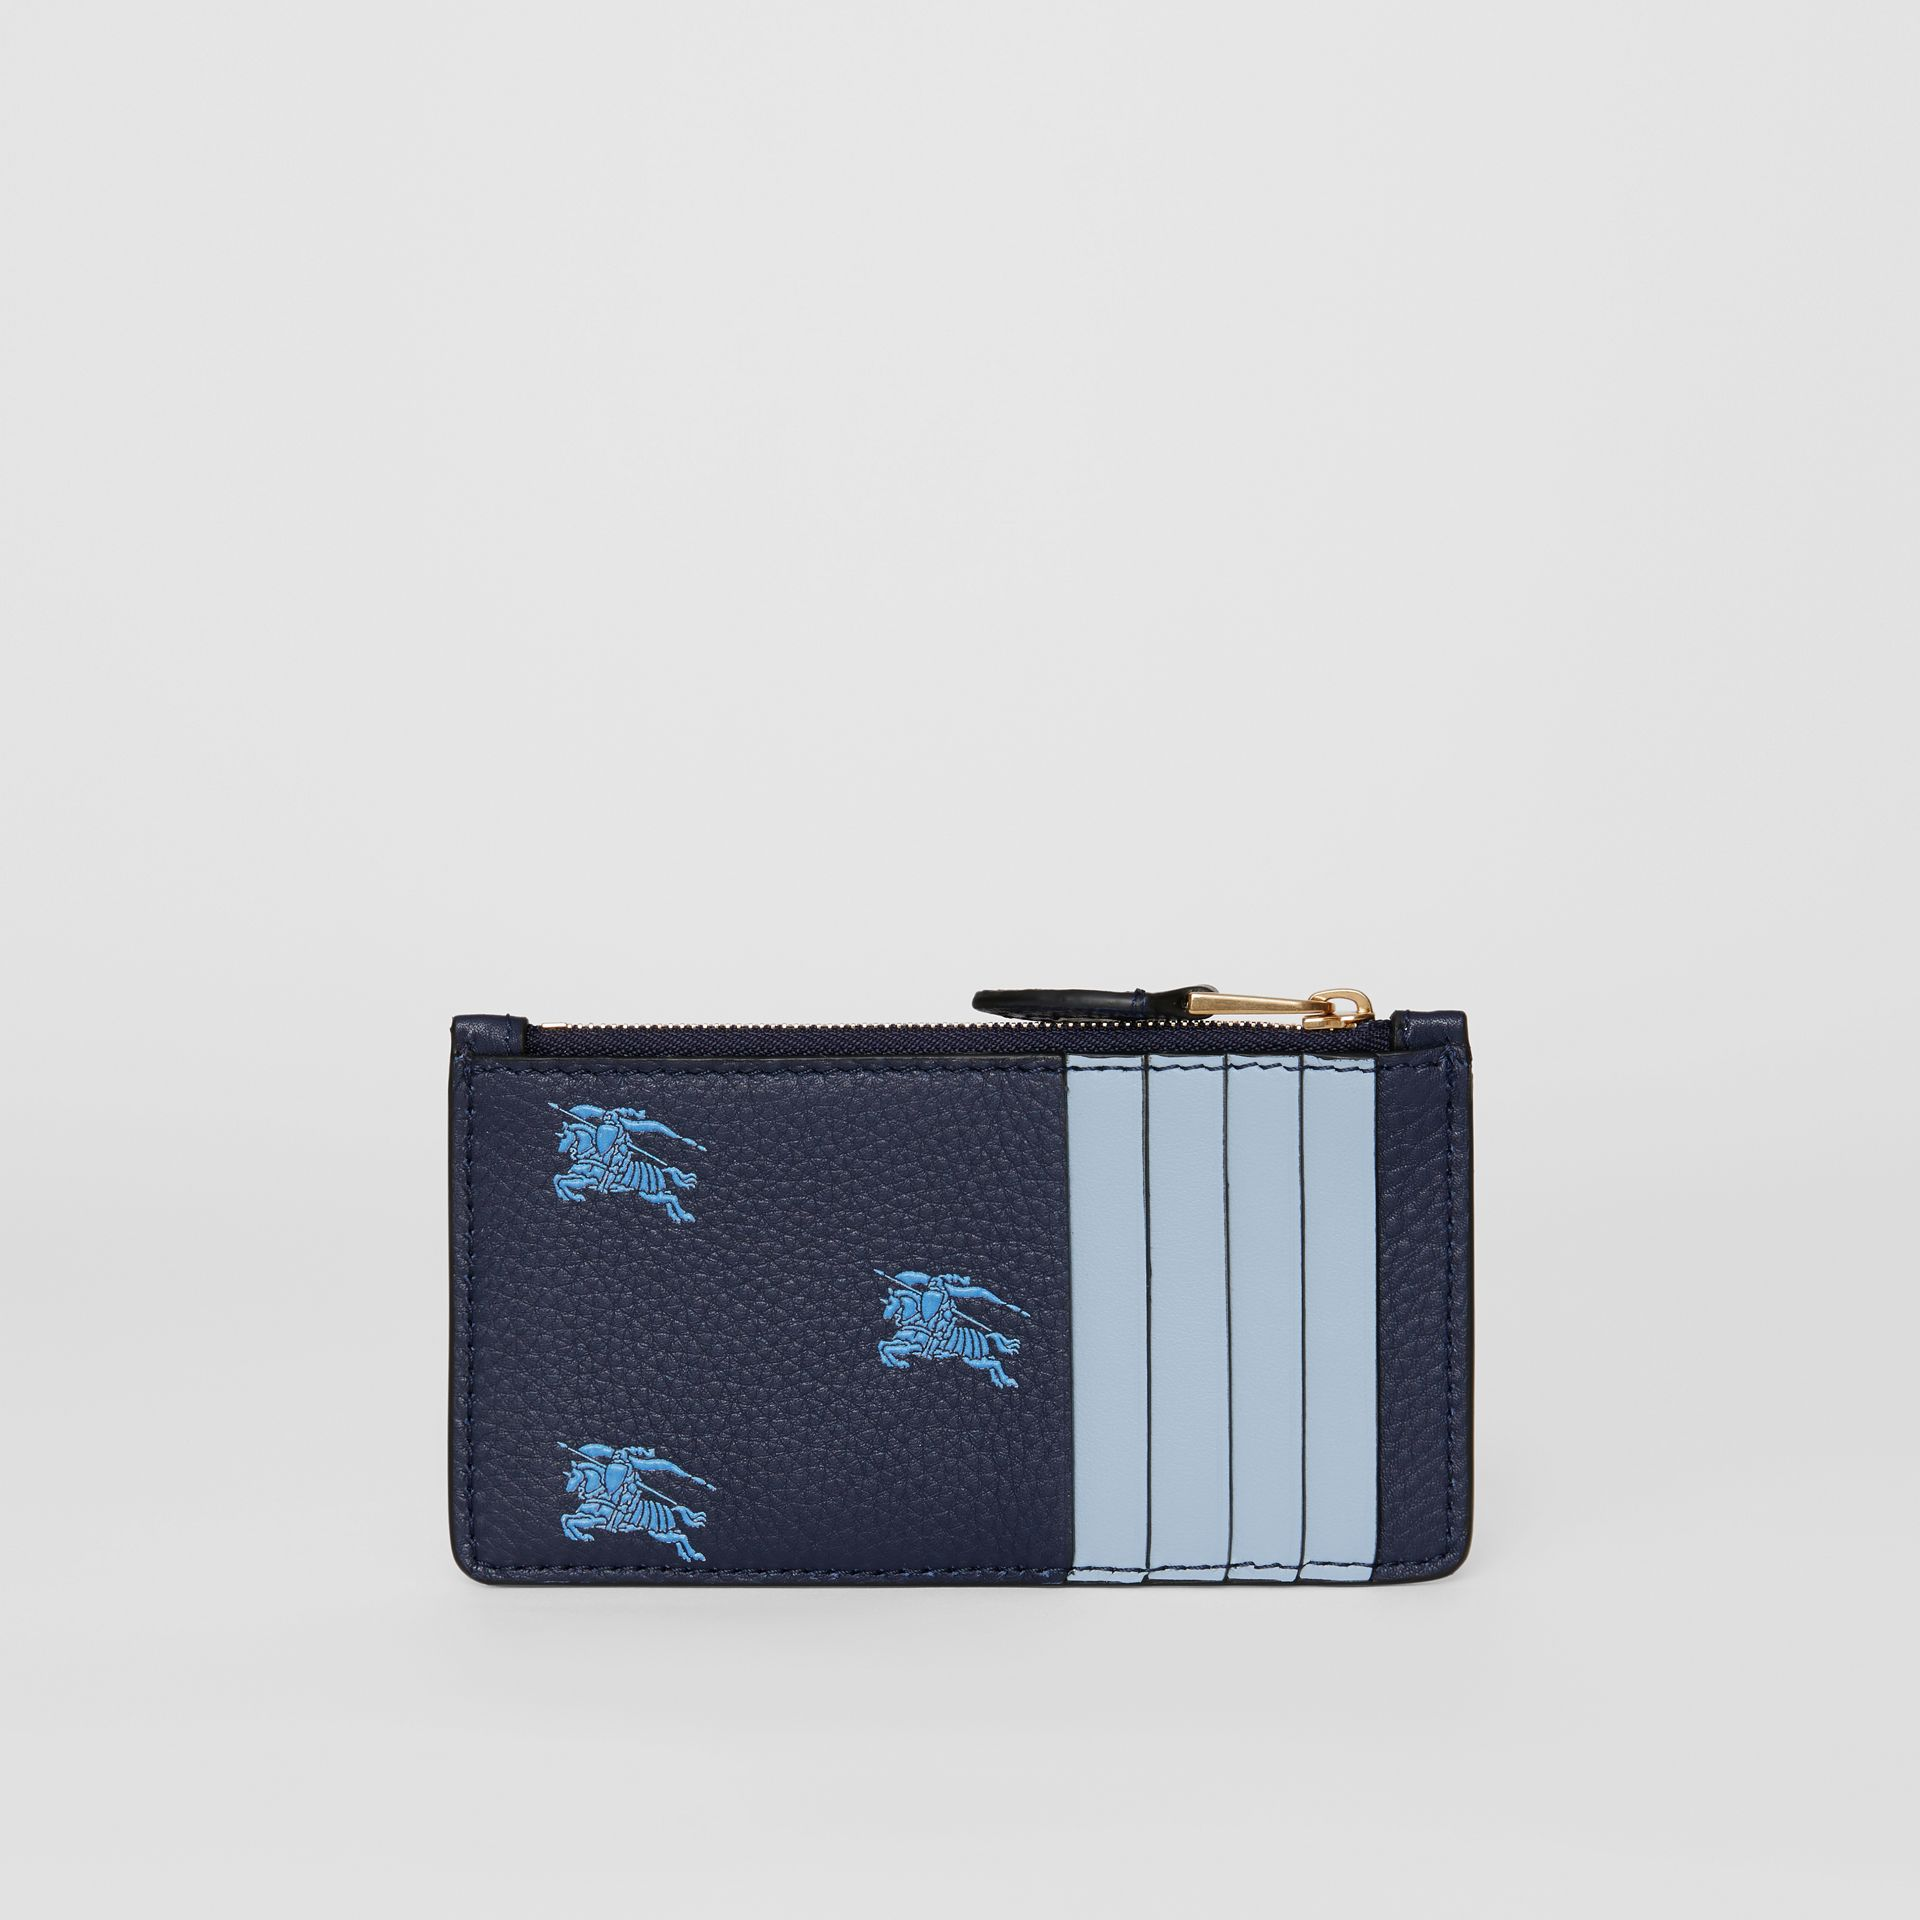 Equestrian Knight Leather Zip Card Case in Regency Blue - Women | Burberry - gallery image 3